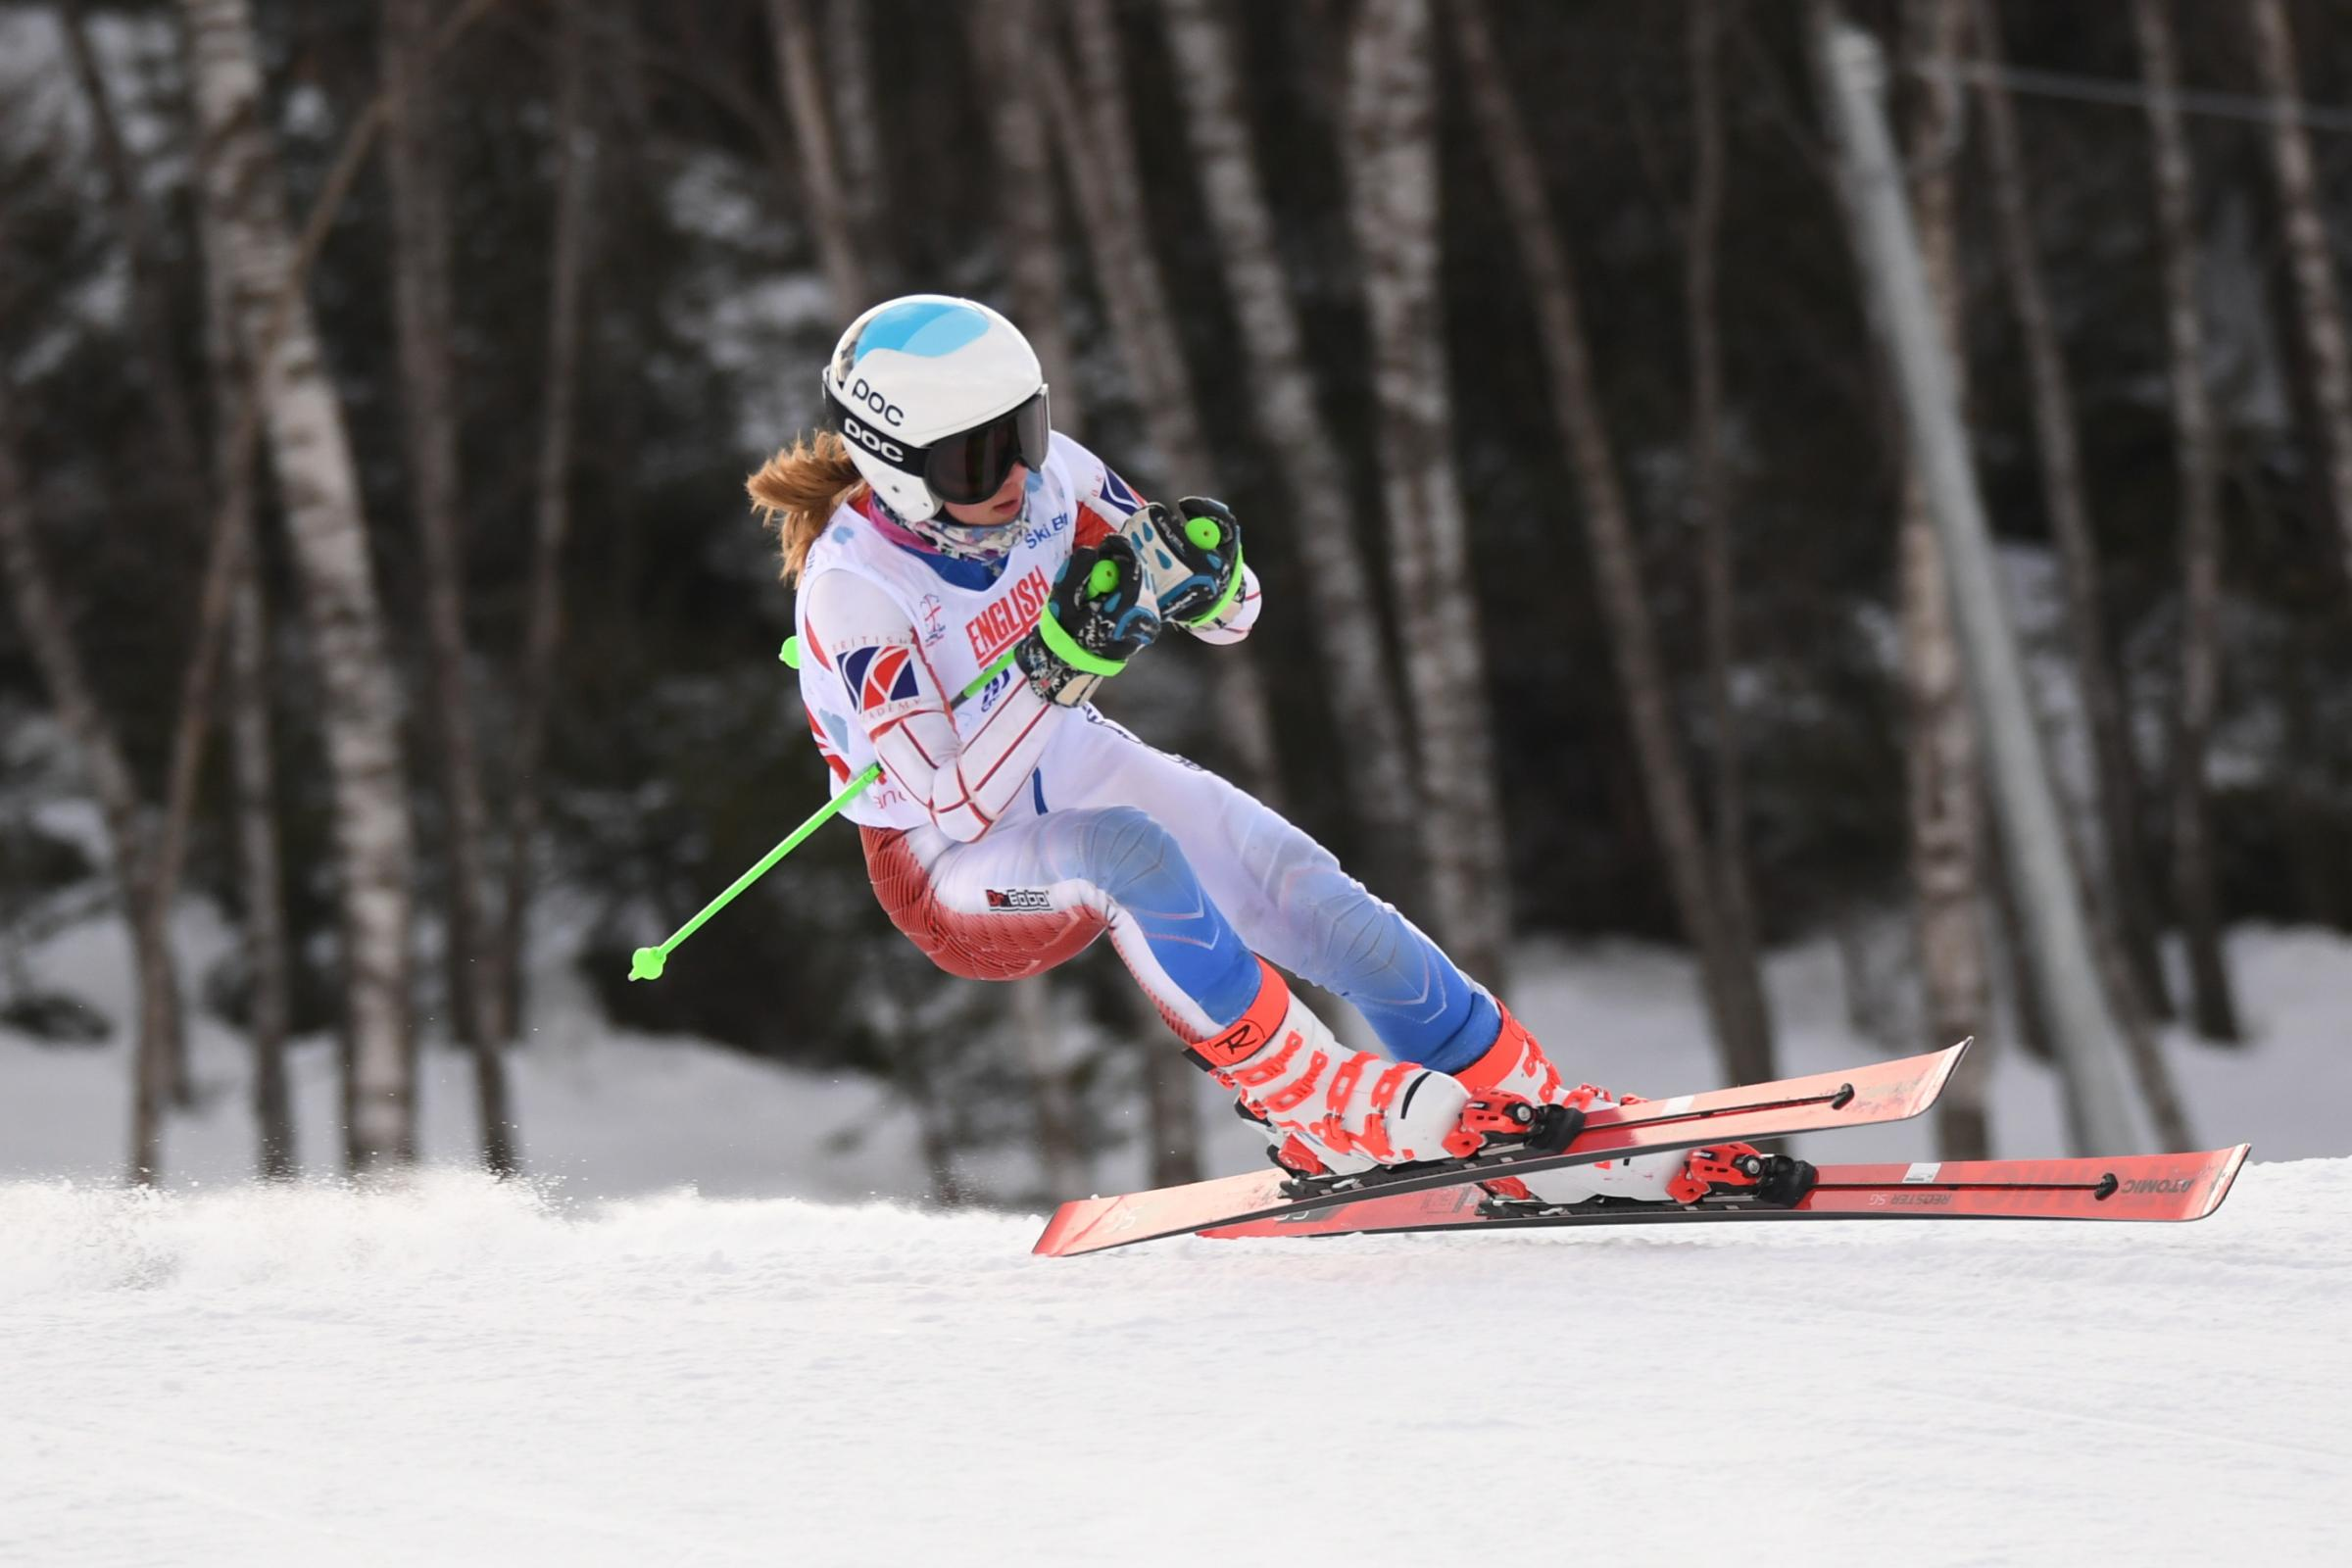 ON THE SLOPES: Weymouth's Bonnie Davenport Picture: RACER READY